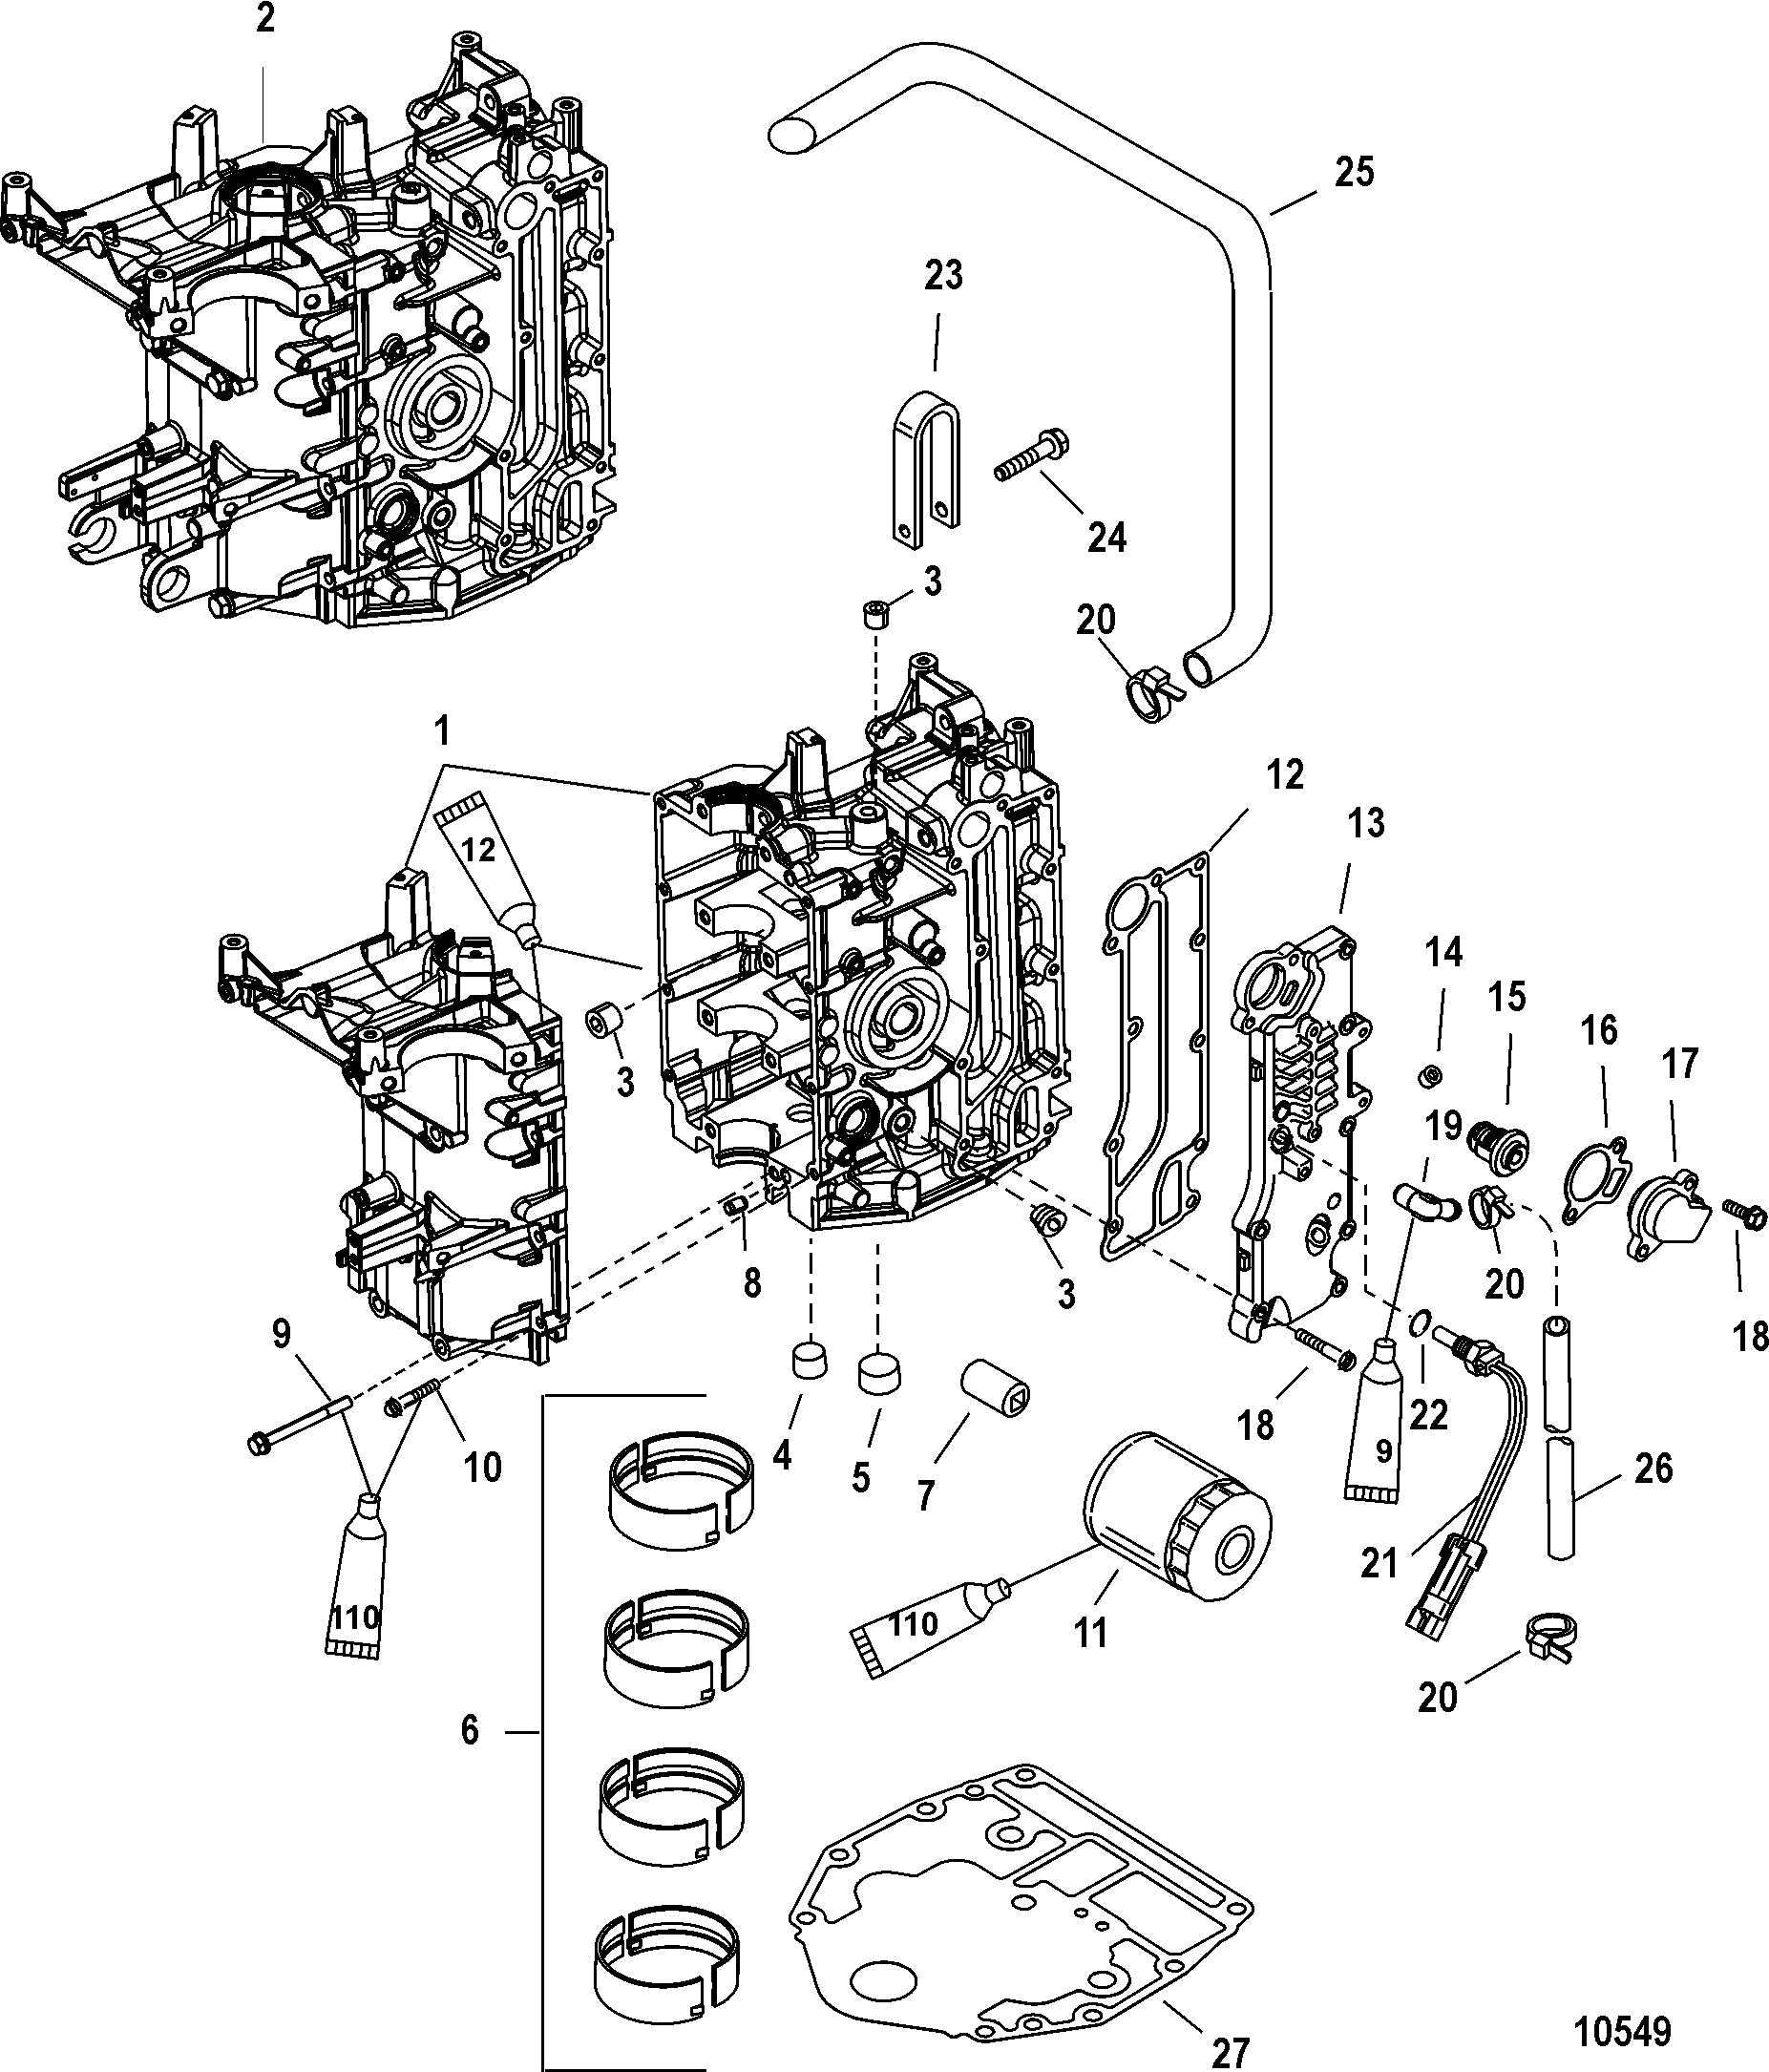 40 Hp Yamaha Wiring Diagram